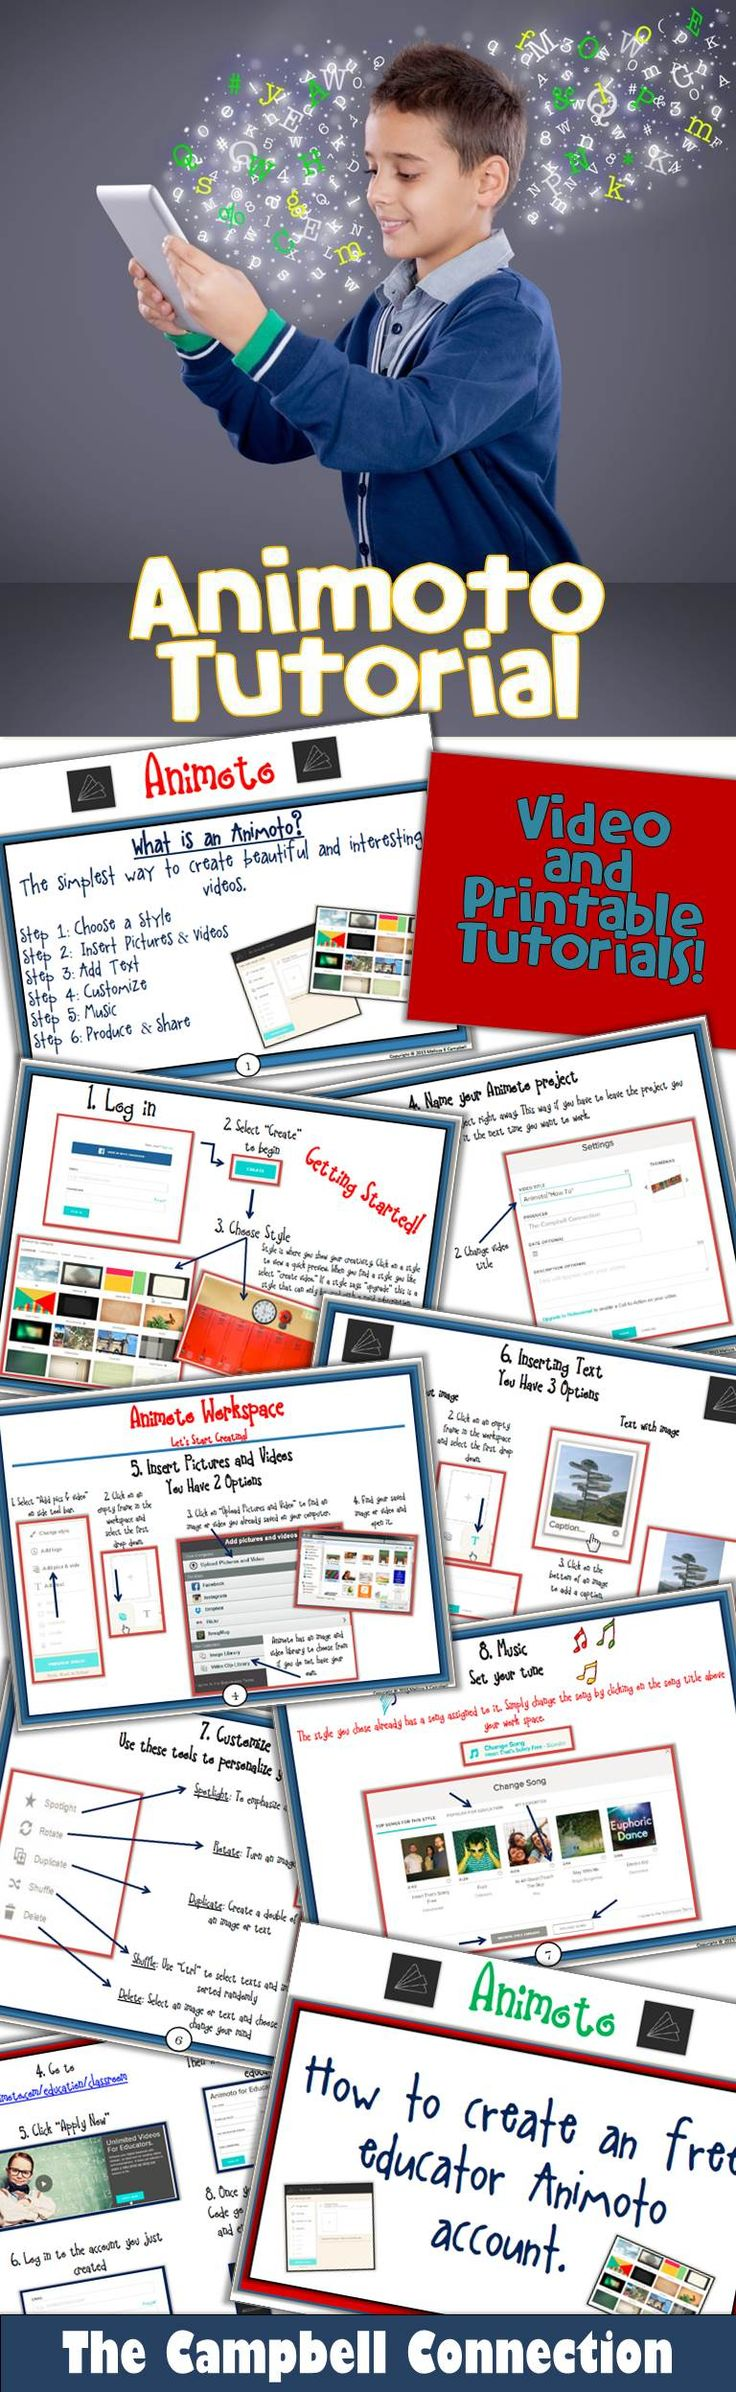 Do you want to use Animoto with your students, but do not know where to begin? These Animoto tutorials are quick and easy guides for both students and teachers to better understand how to create Animotos. There is an easy to follow and simple video for students and teachers to watch, along with a printable tutorials. Get ready to create Animotos!